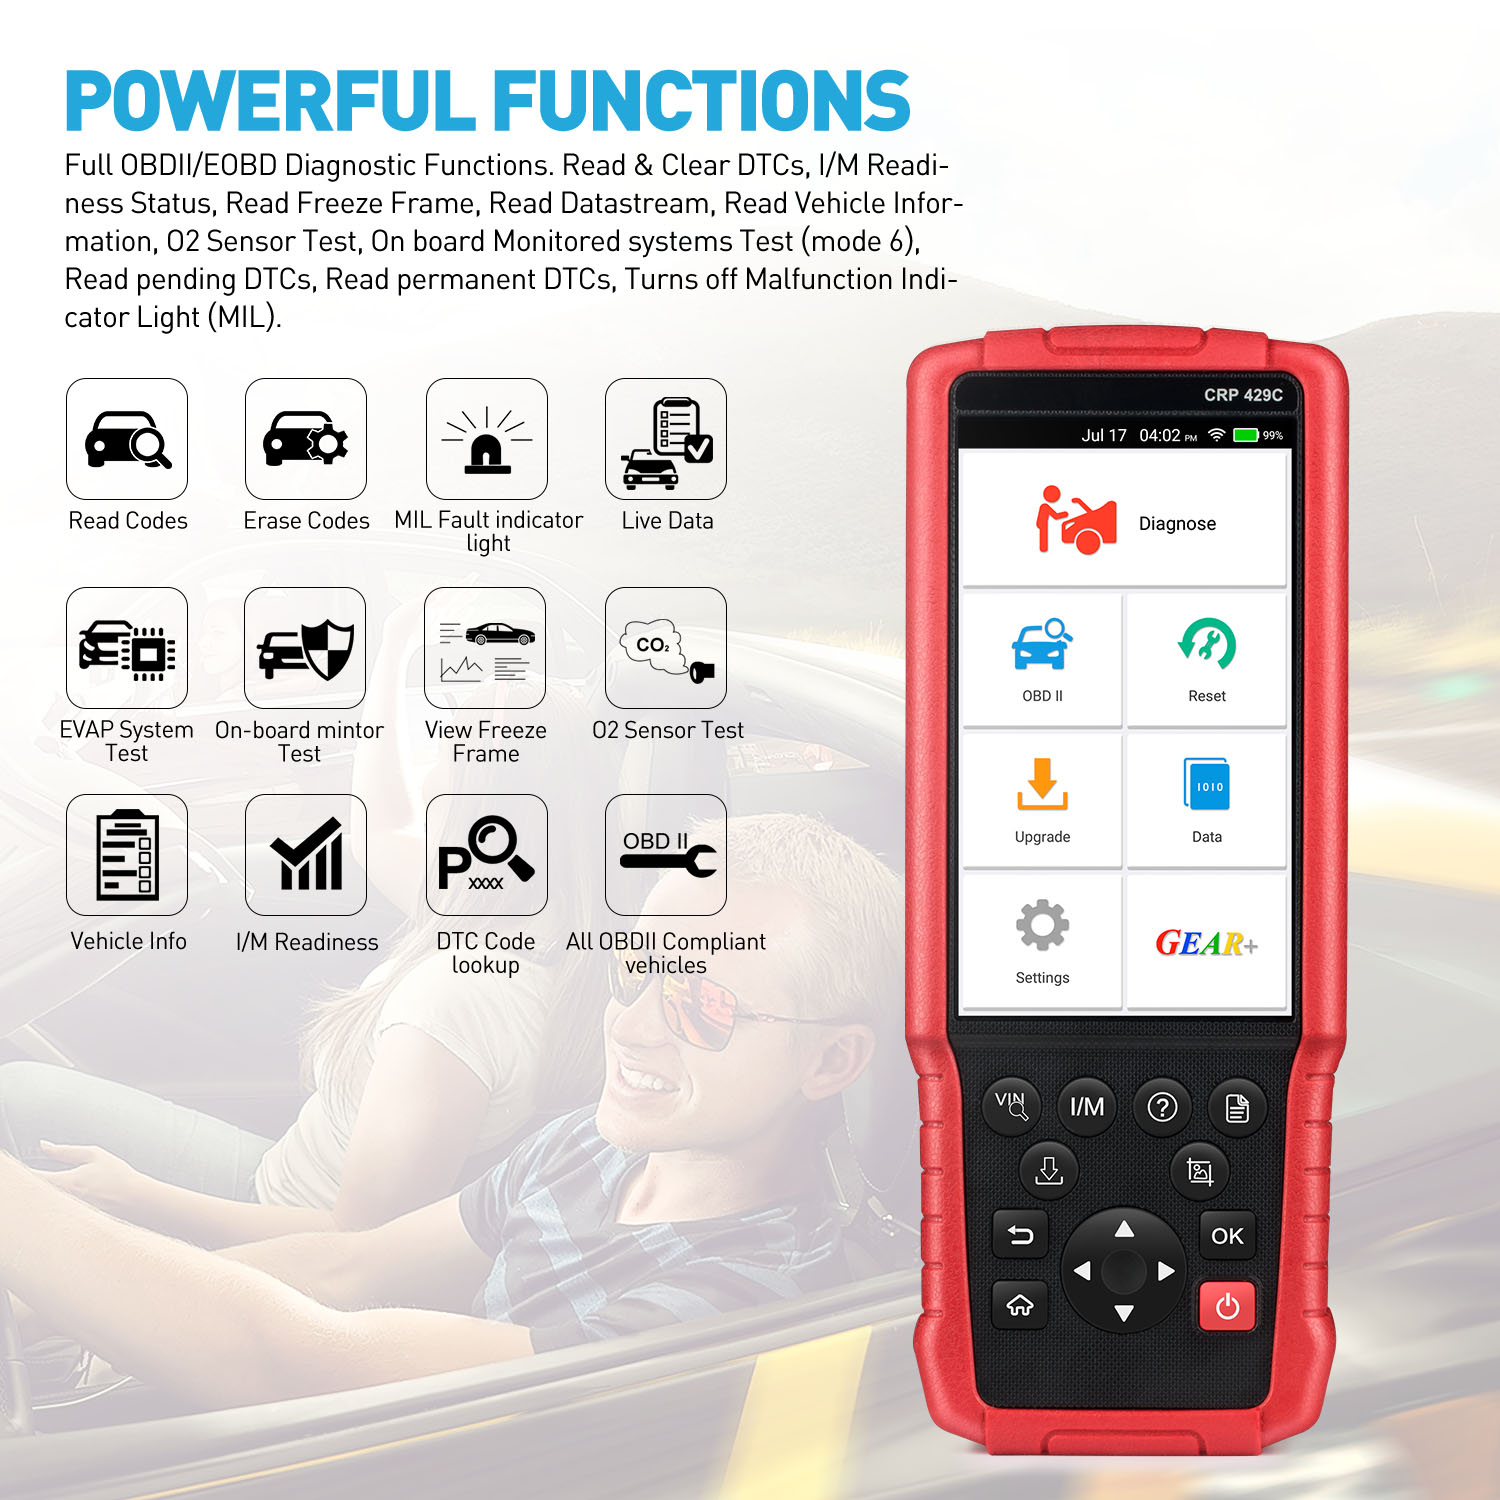 LAUNCH CRP429C OBD2 Diagnostic Scan Tool 4 Systems Diagnoses Service Functions of Oil Reset,EPB,BMS,SAS,DPF,Injector Coding,IMMO